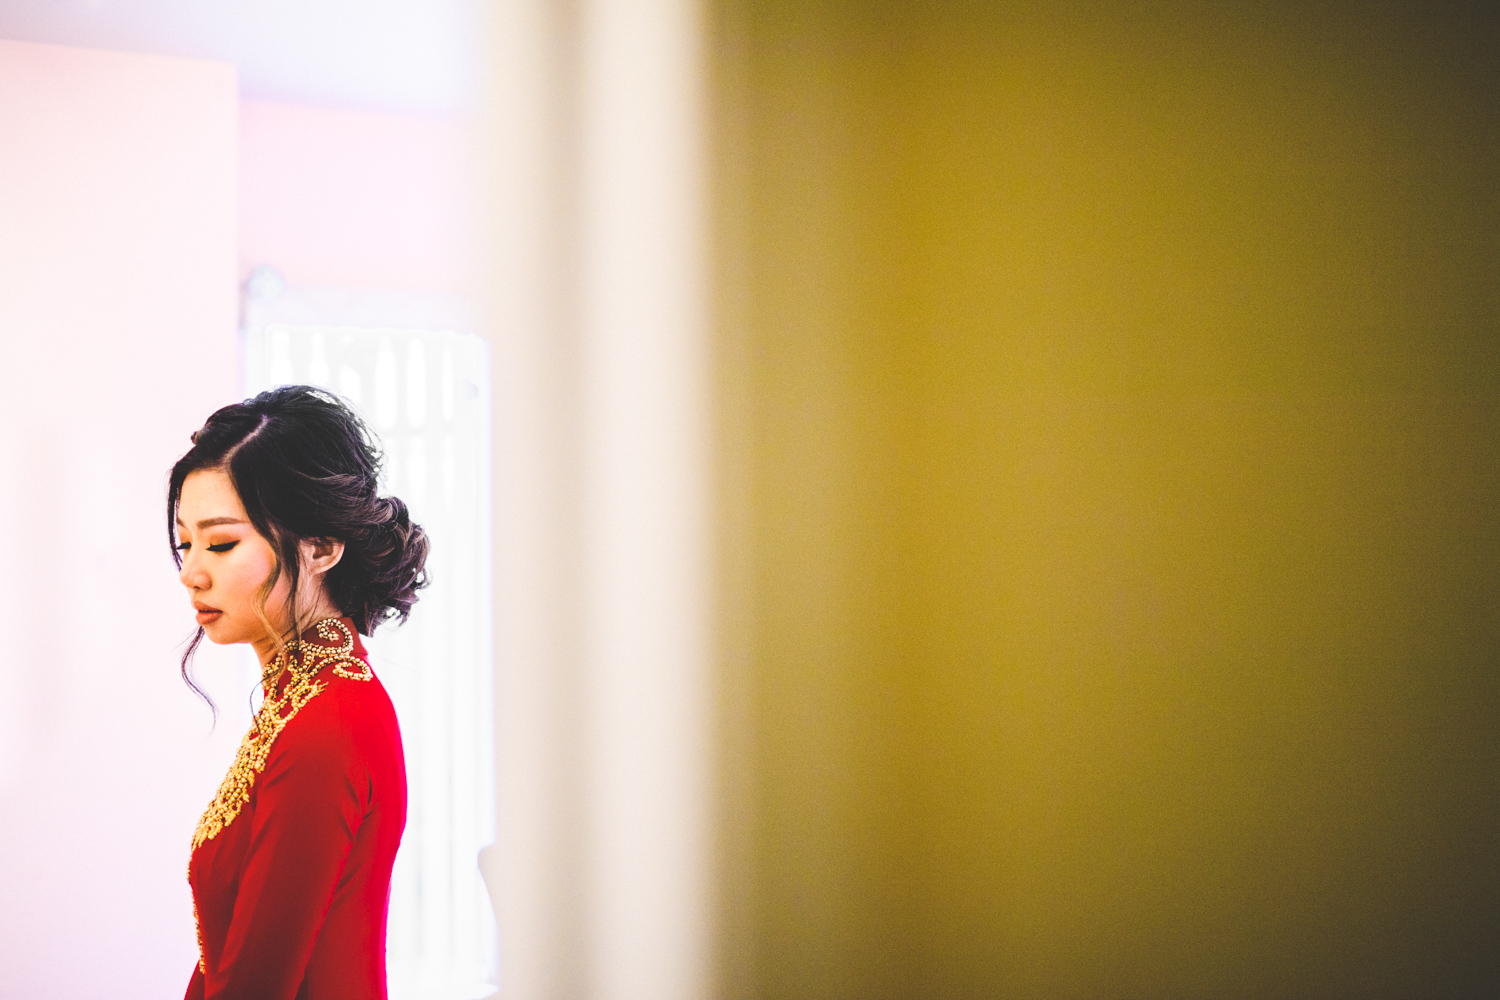 001 - chinese bride getting ready in red wedding gown - baltimore and washington dc wedding photographer nathan mitchell.jpg